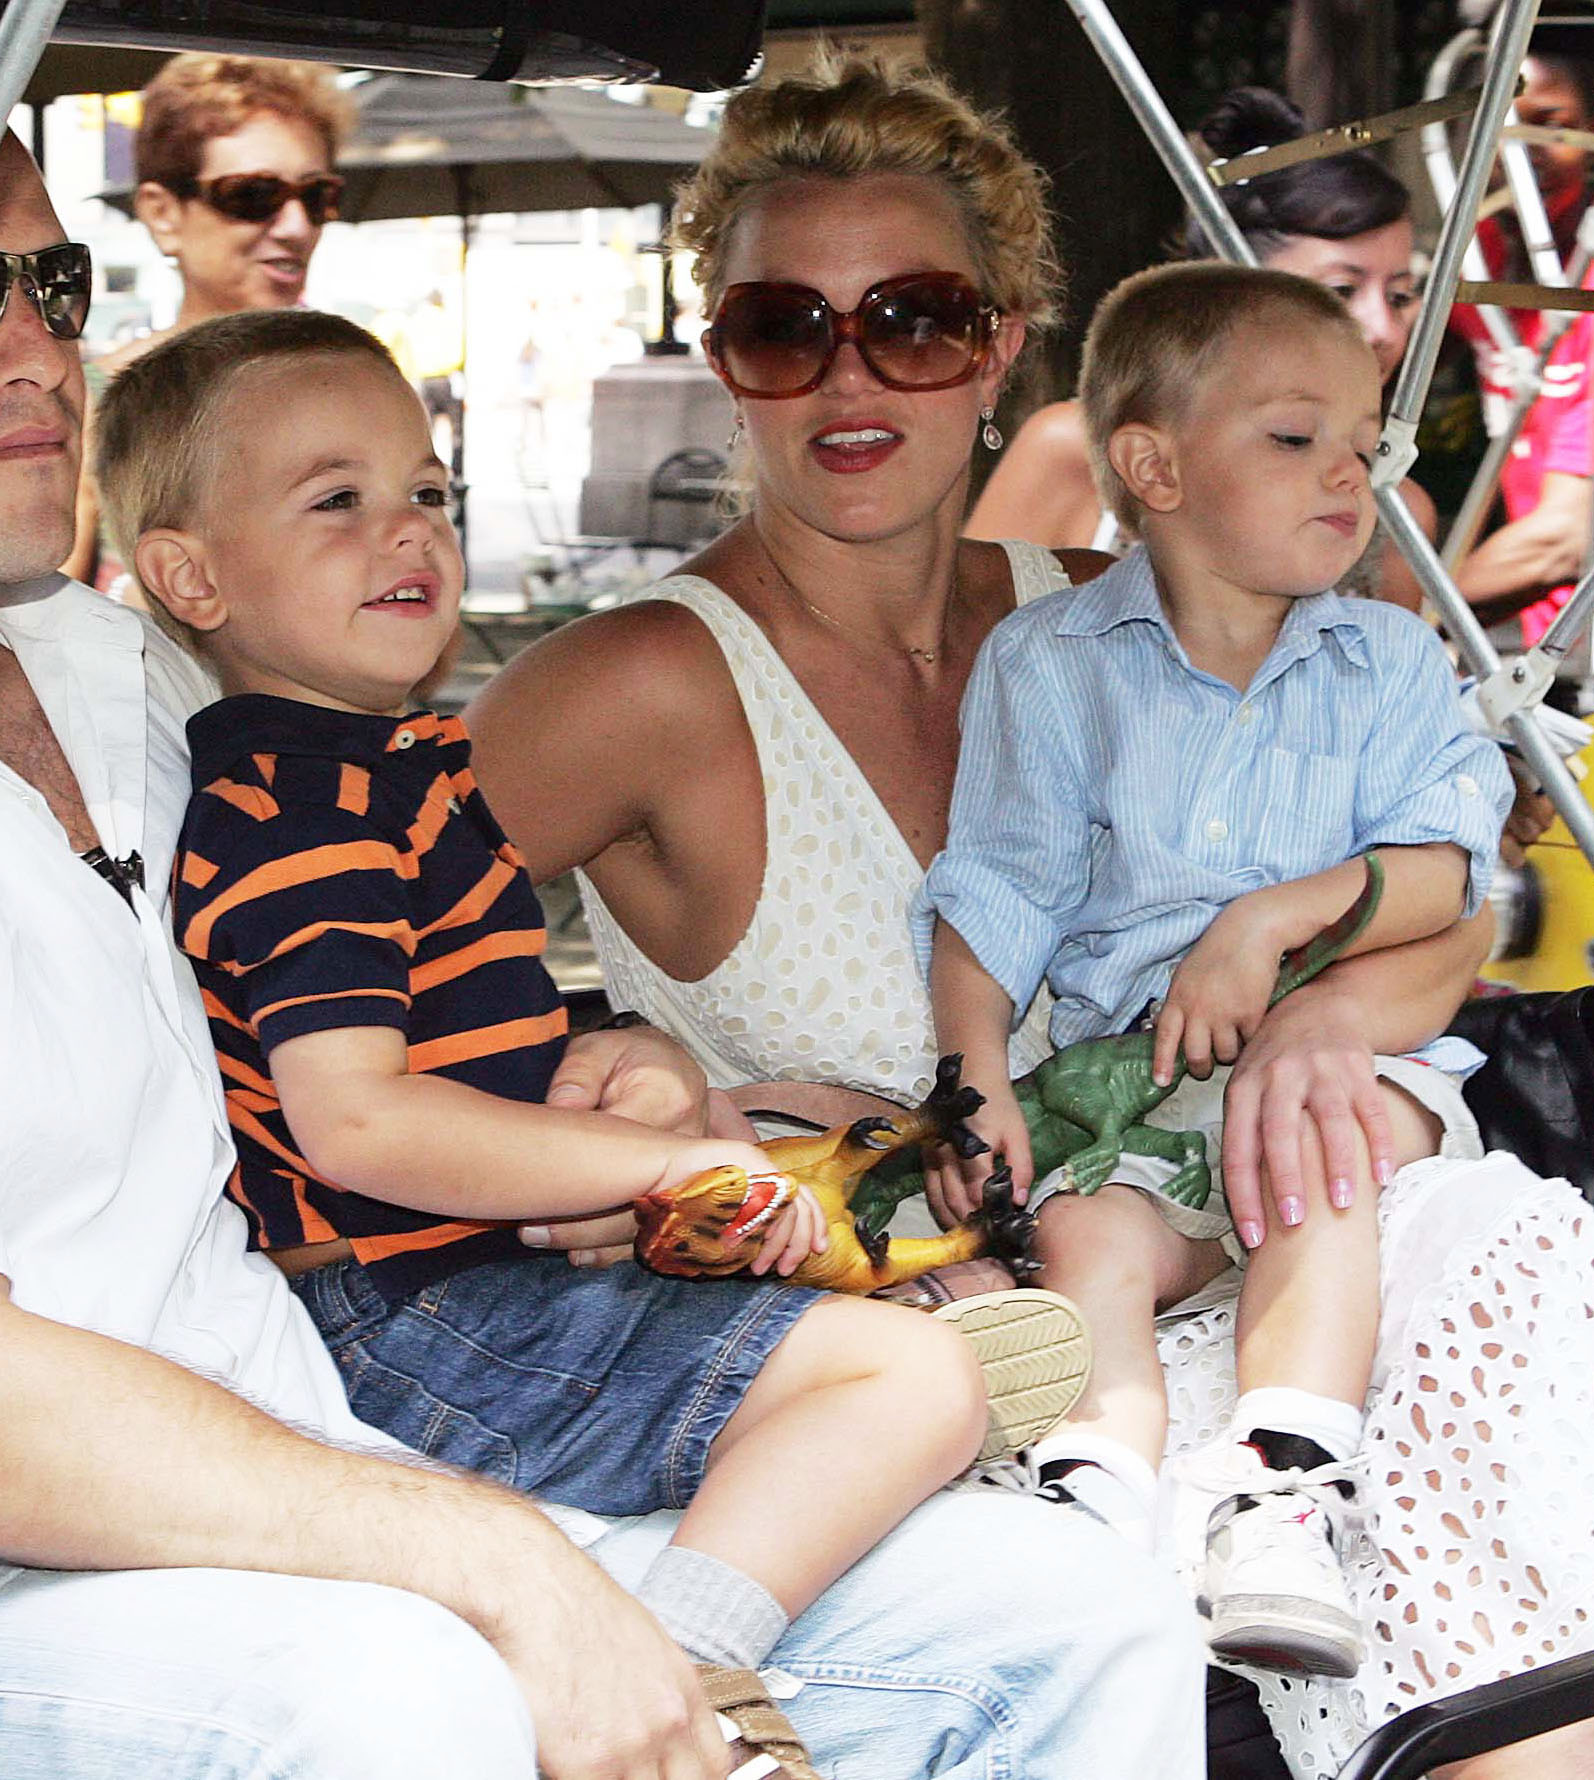 Britney Spears Takes the Kids For a Pedicab Ride Through NYC!